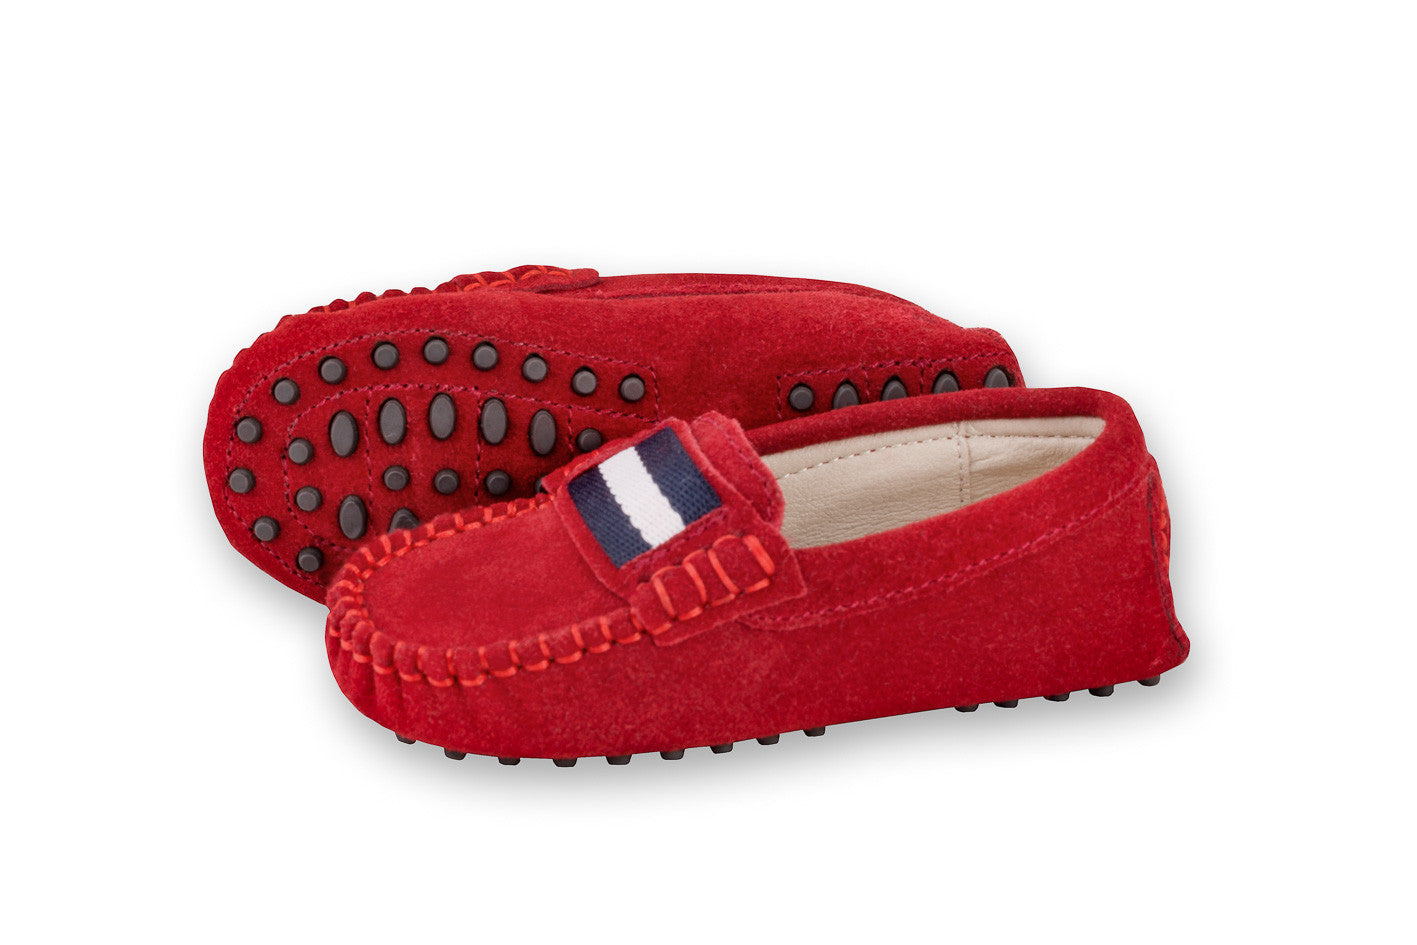 Oscars  Red Loafer - Ladida